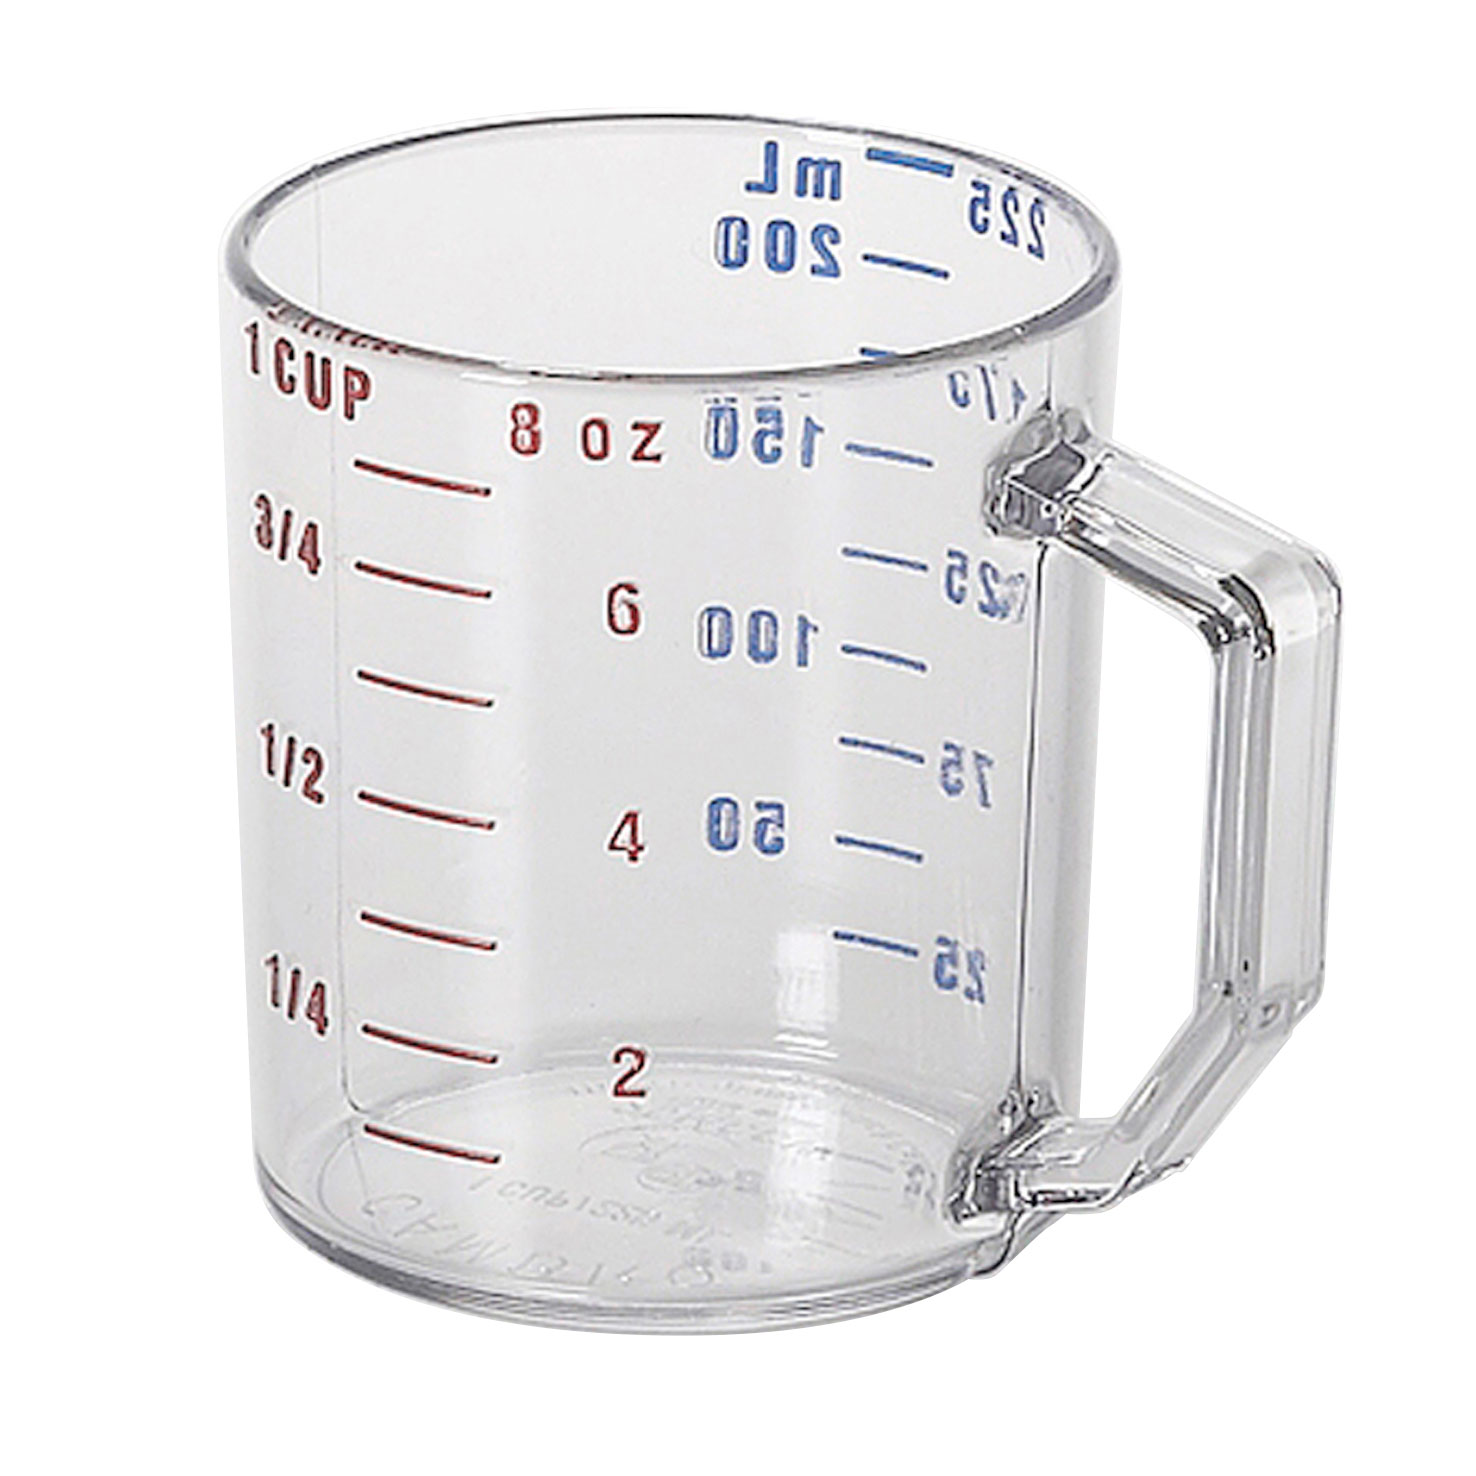 Cambro 25MCCW135 measuring cups